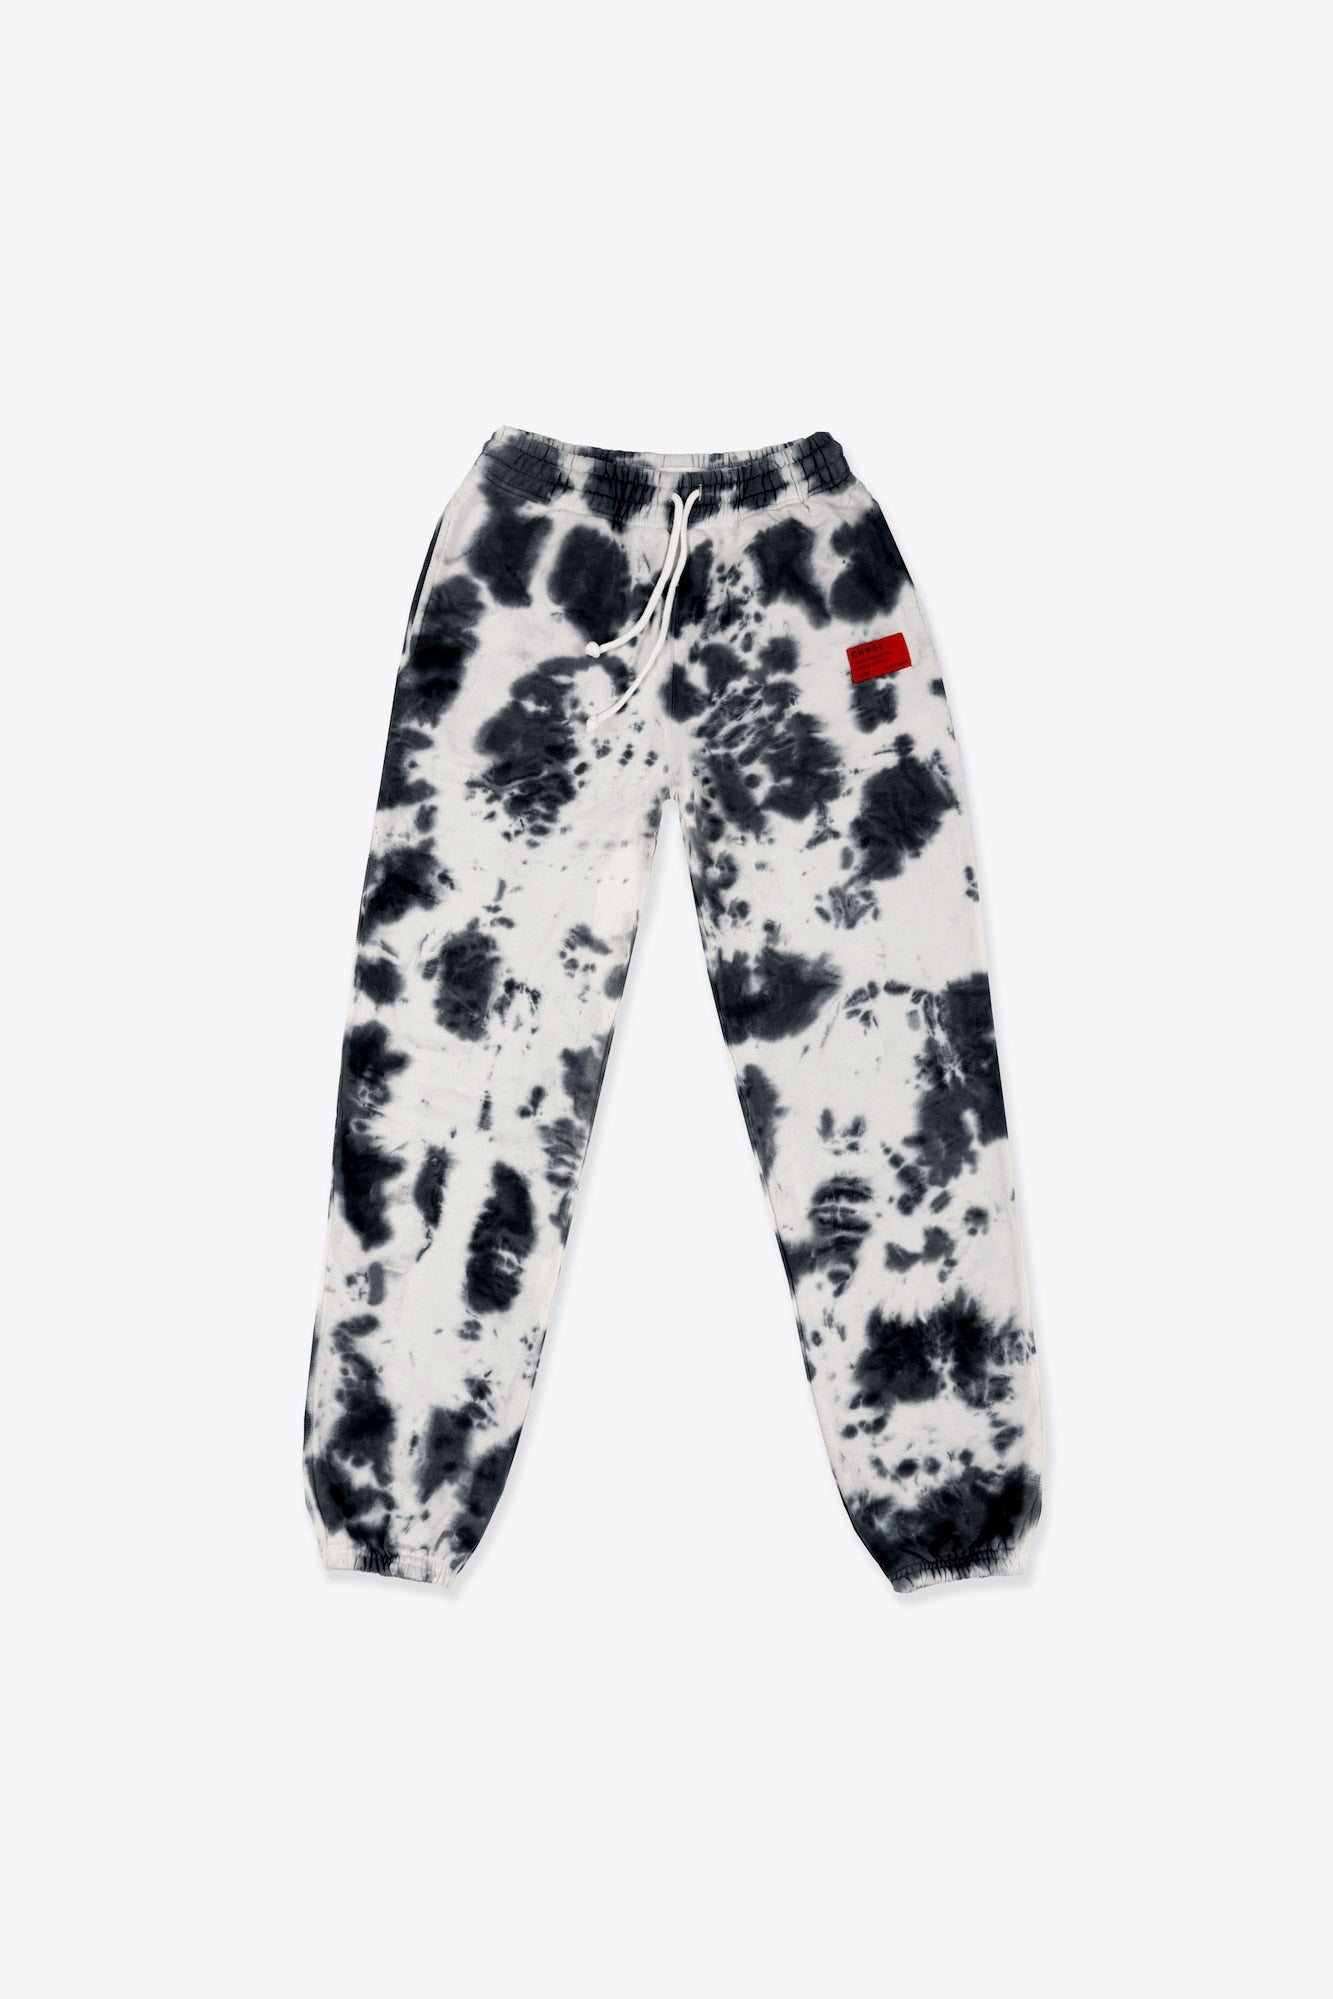 Cookies & Cream Tie Dye University Sweatpants